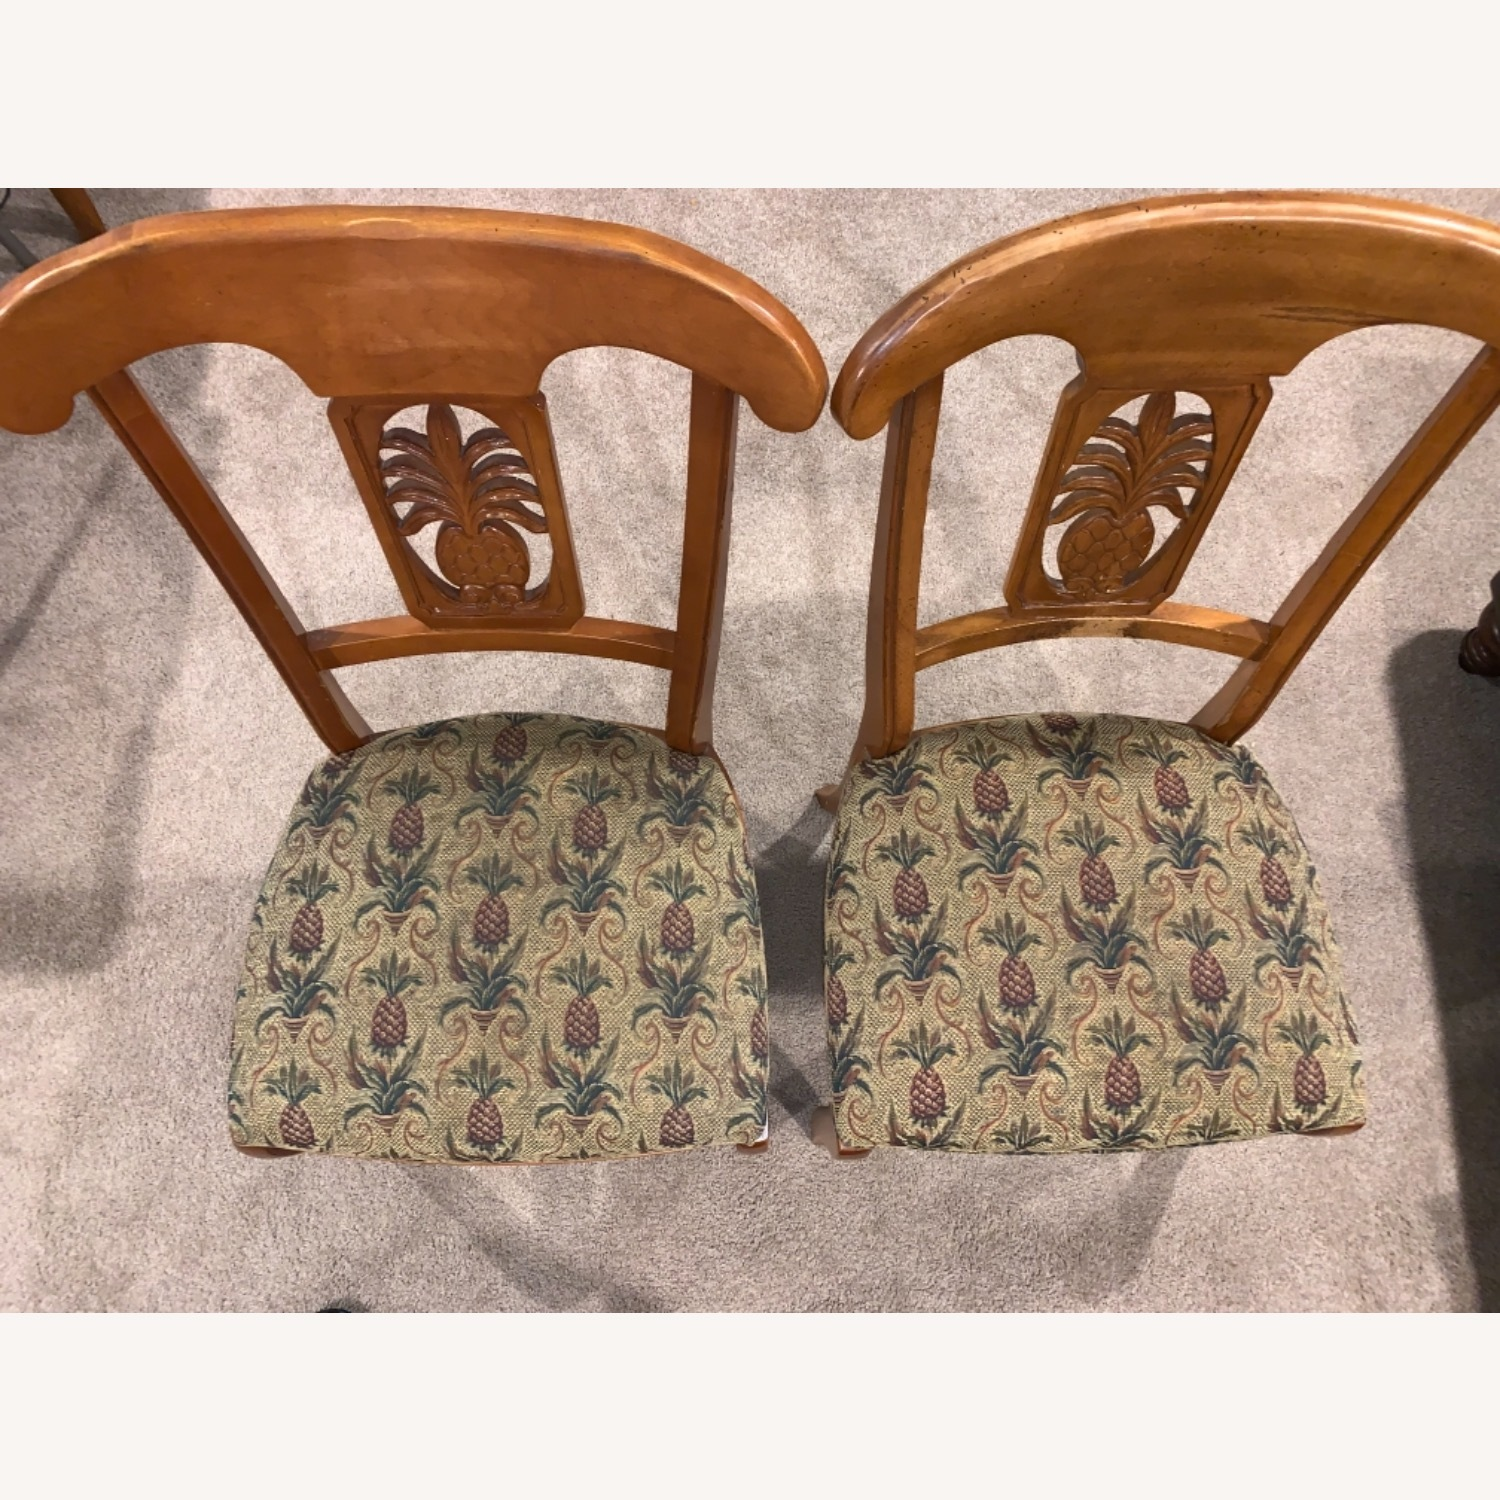 Ethan Allen Wood Dining Table with Leaf & 4 Chairs - image-6